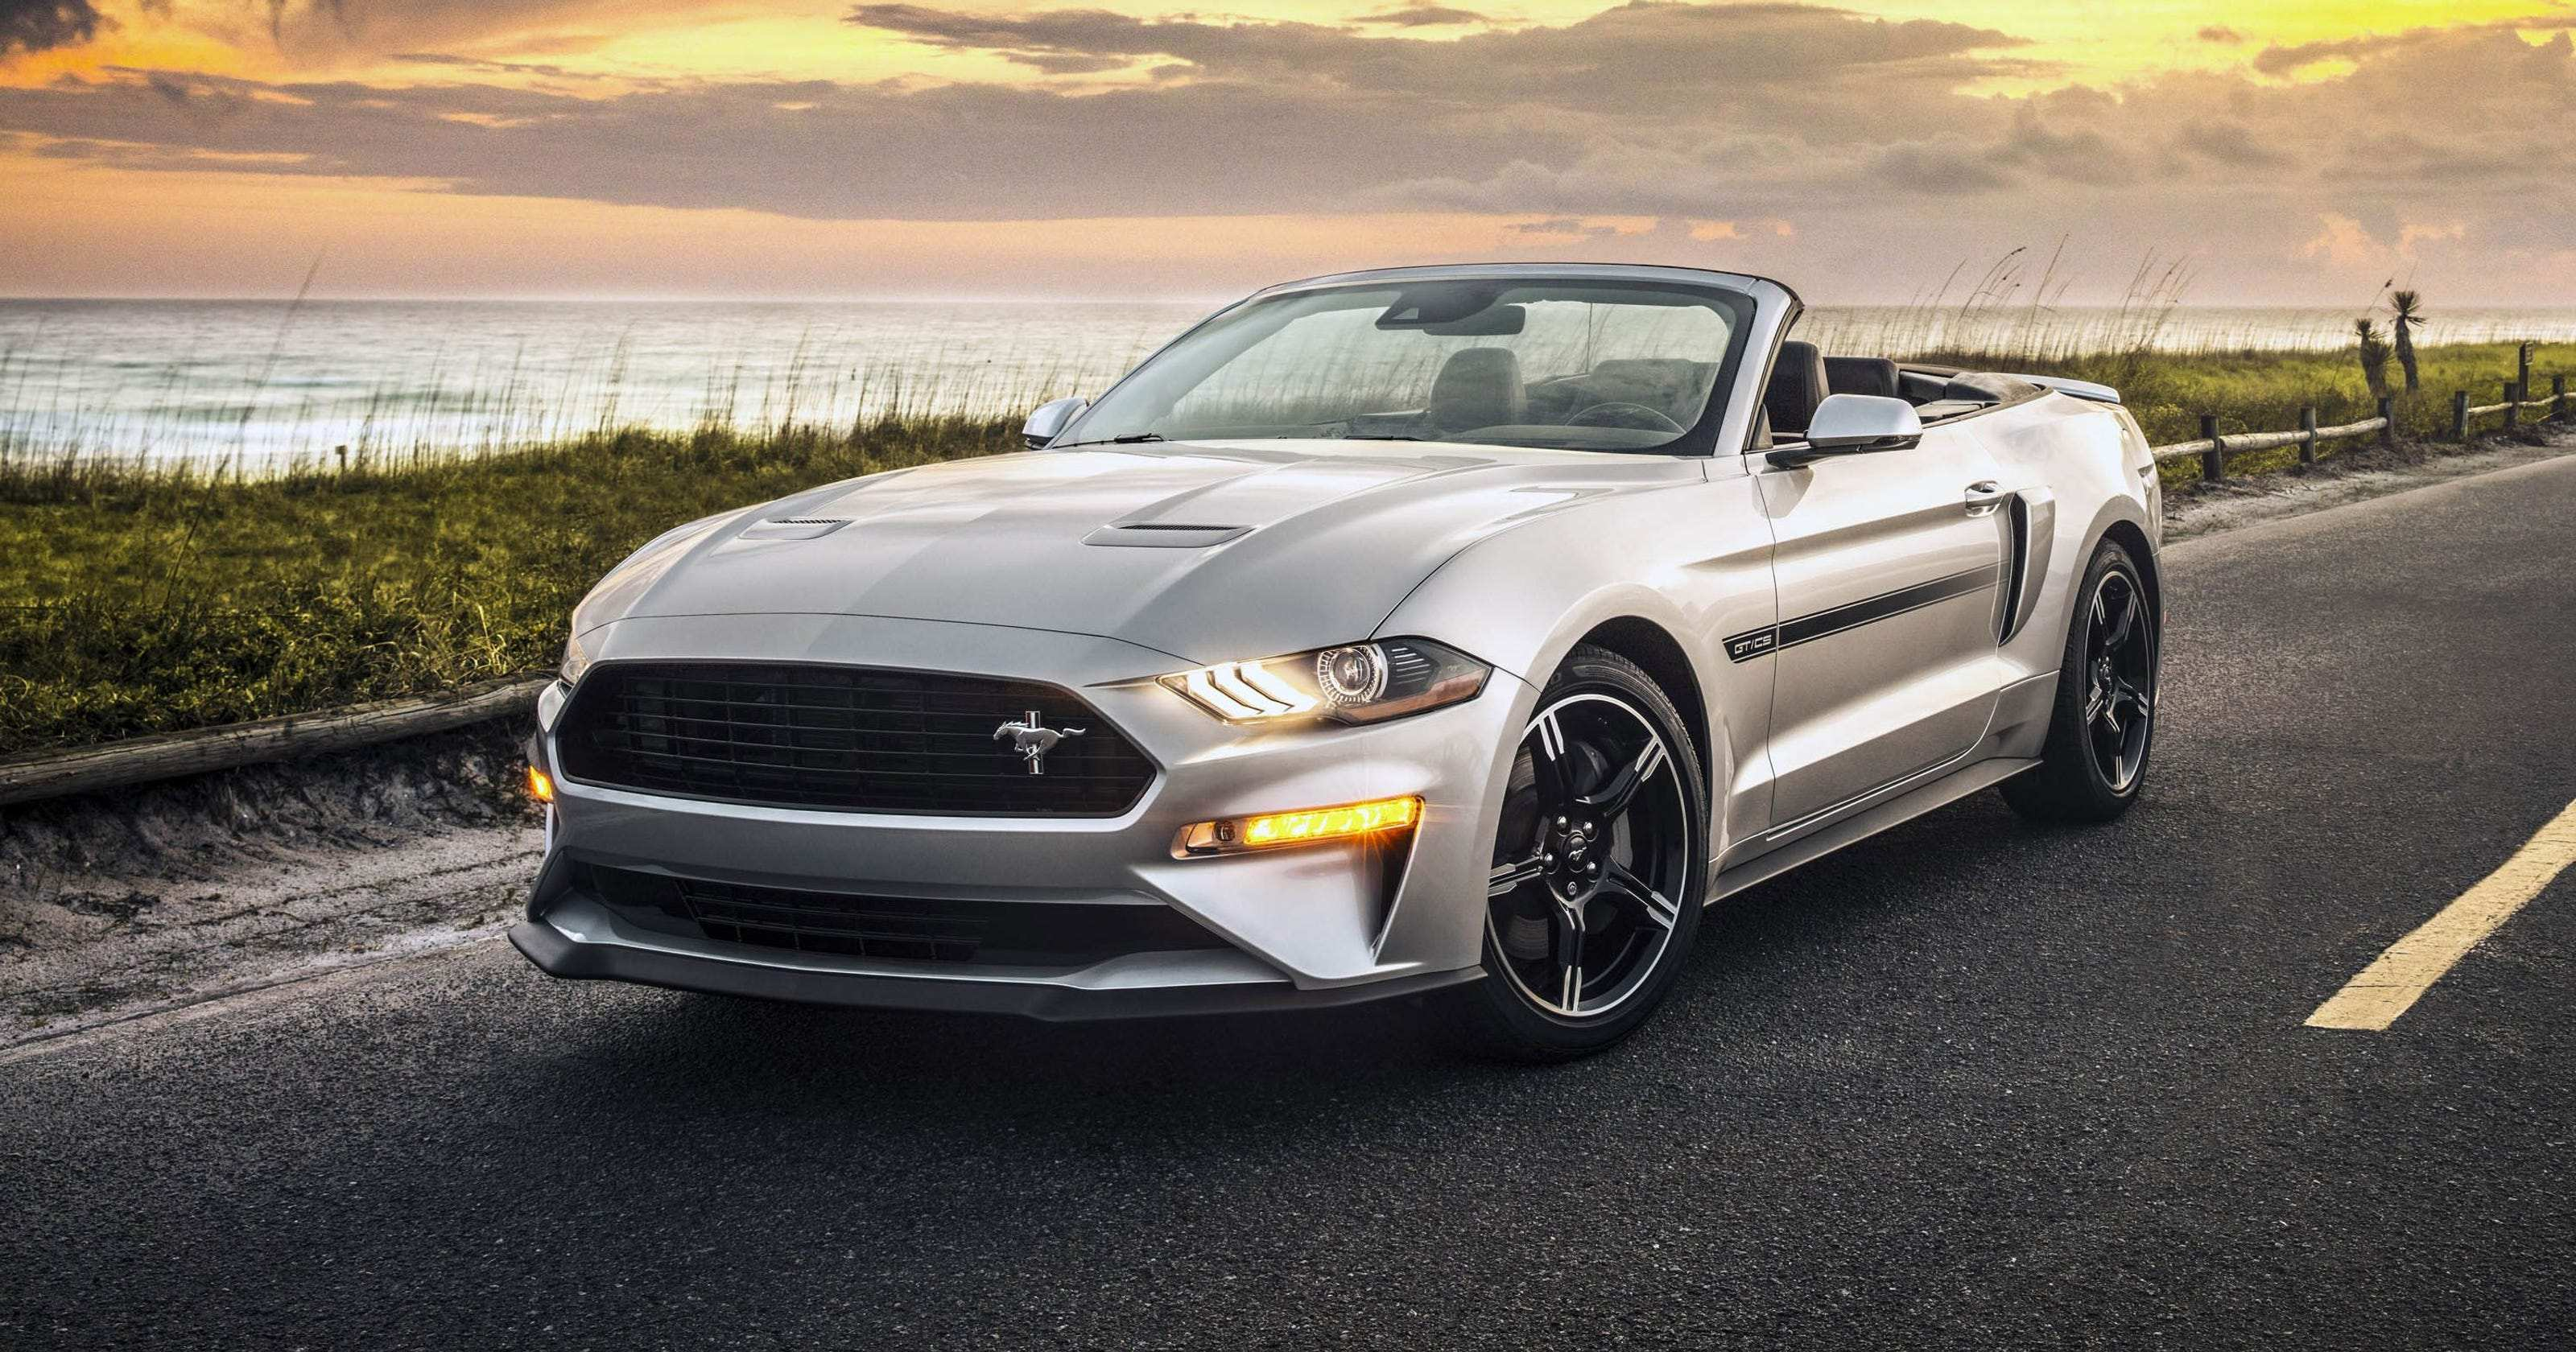 85 Best 2019 Mustang Mach 1 Price And Review